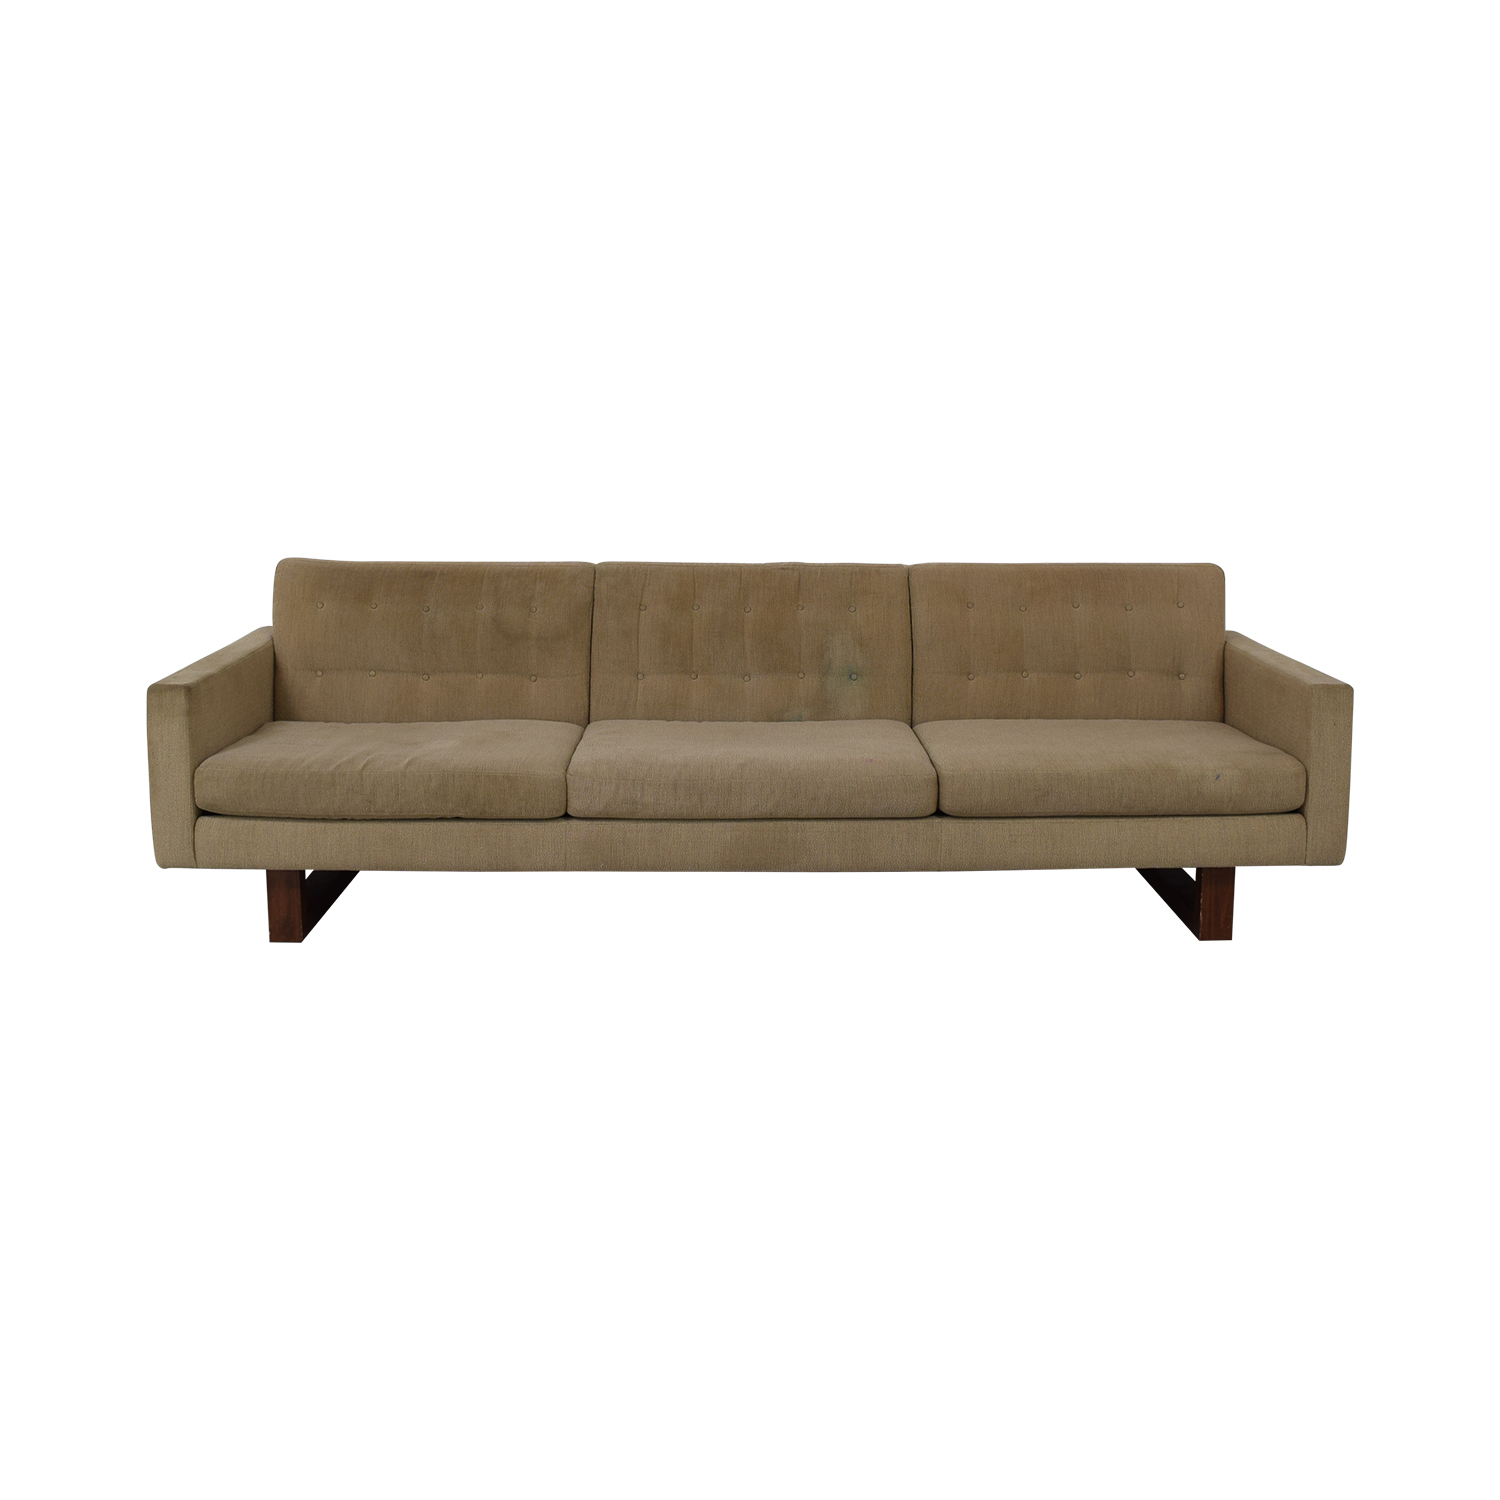 American Leather American Leather Tan Tufted Three-Cushion Sofa nyc